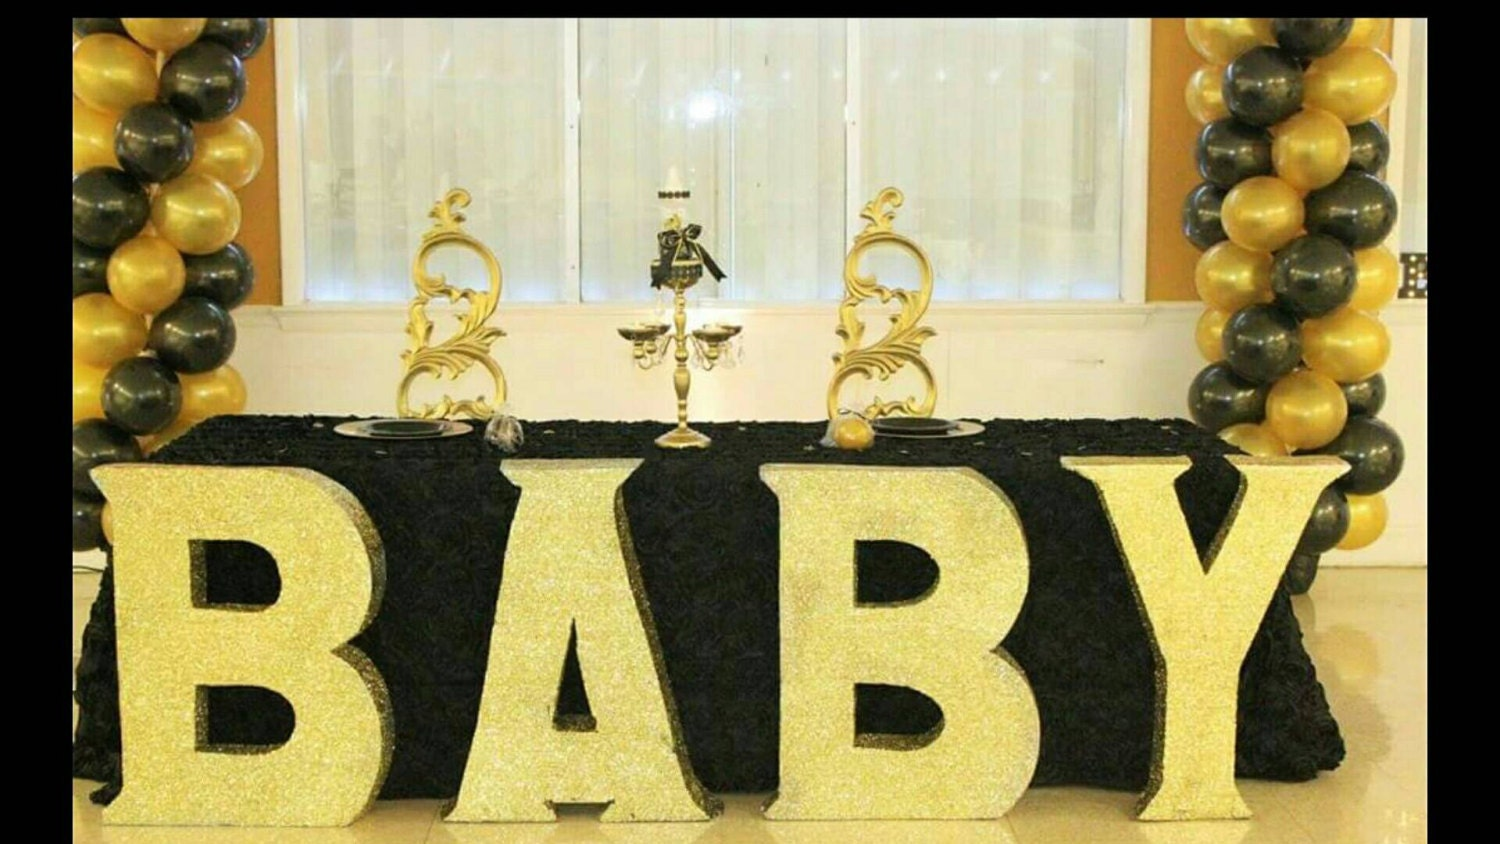 BABY Large baby block letters free standing letters white